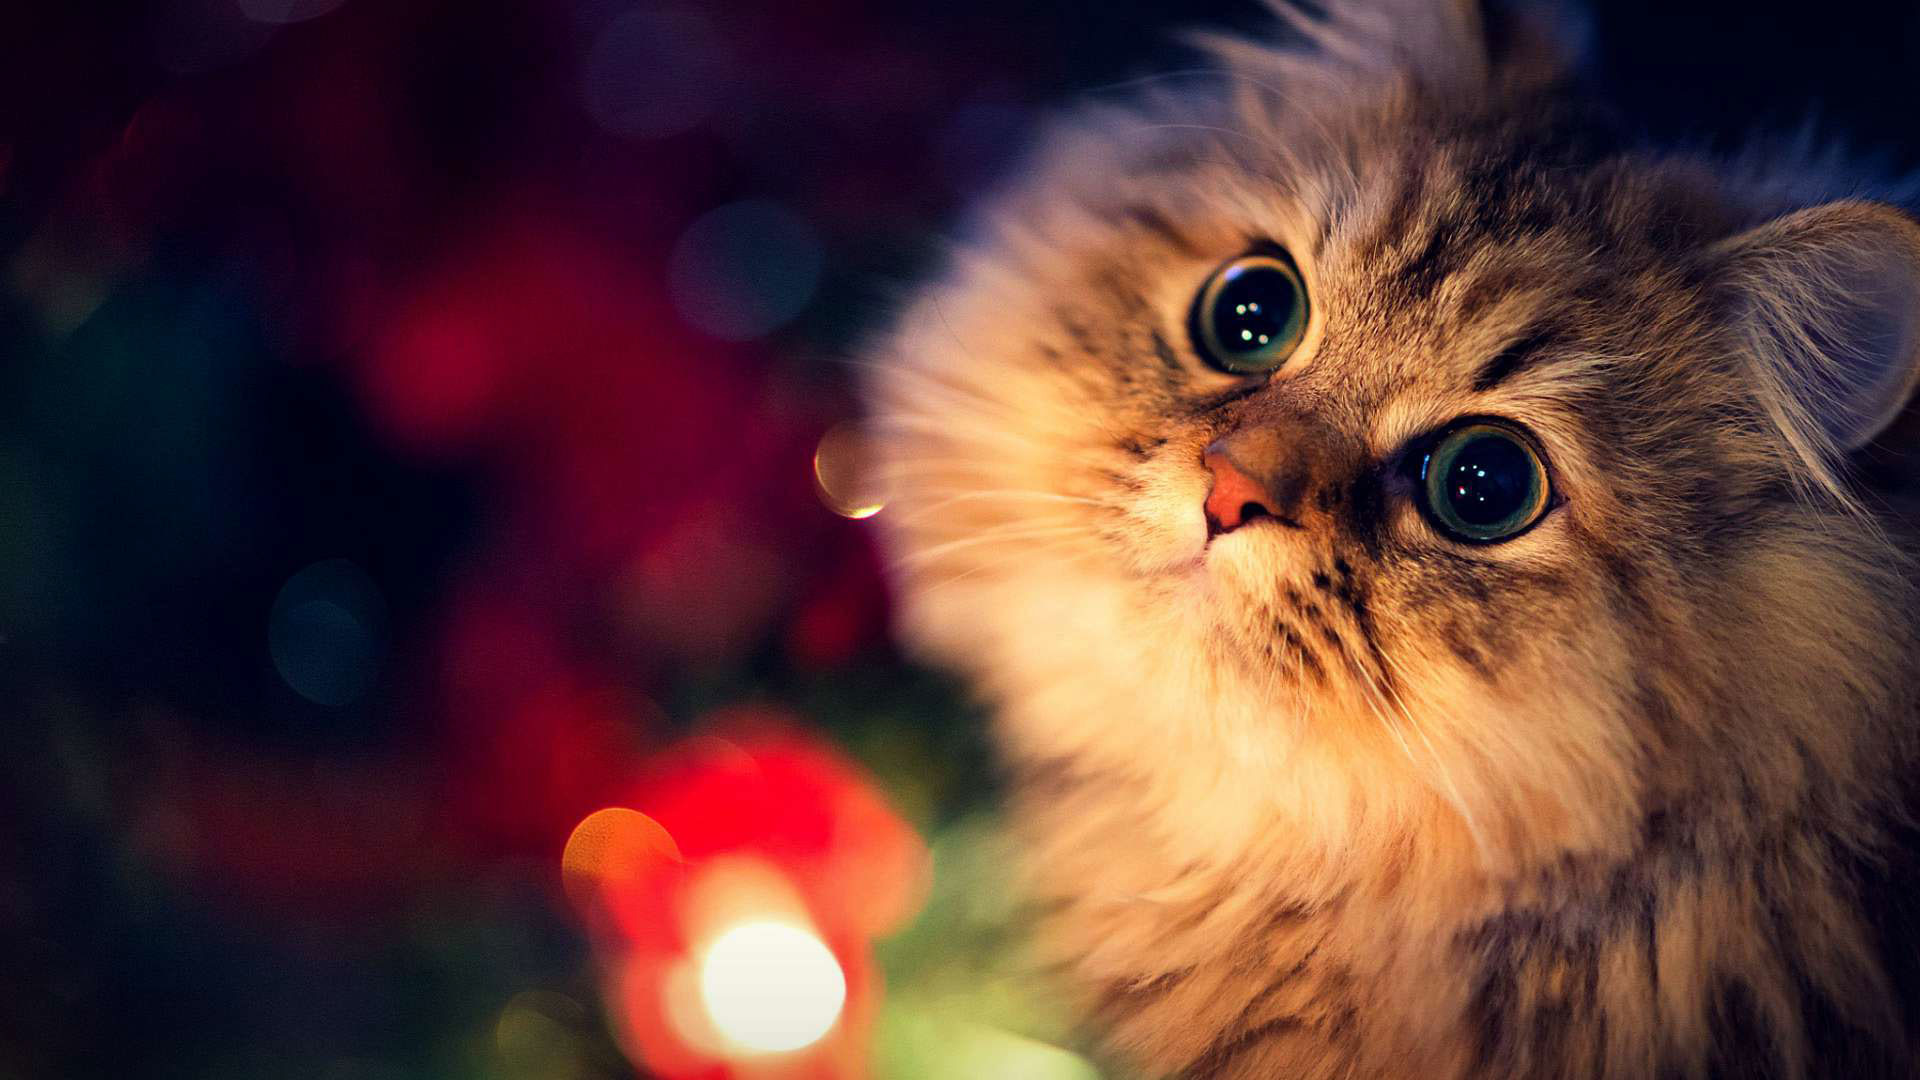 Cute HD Wallpapers For Desktop (73+ Images